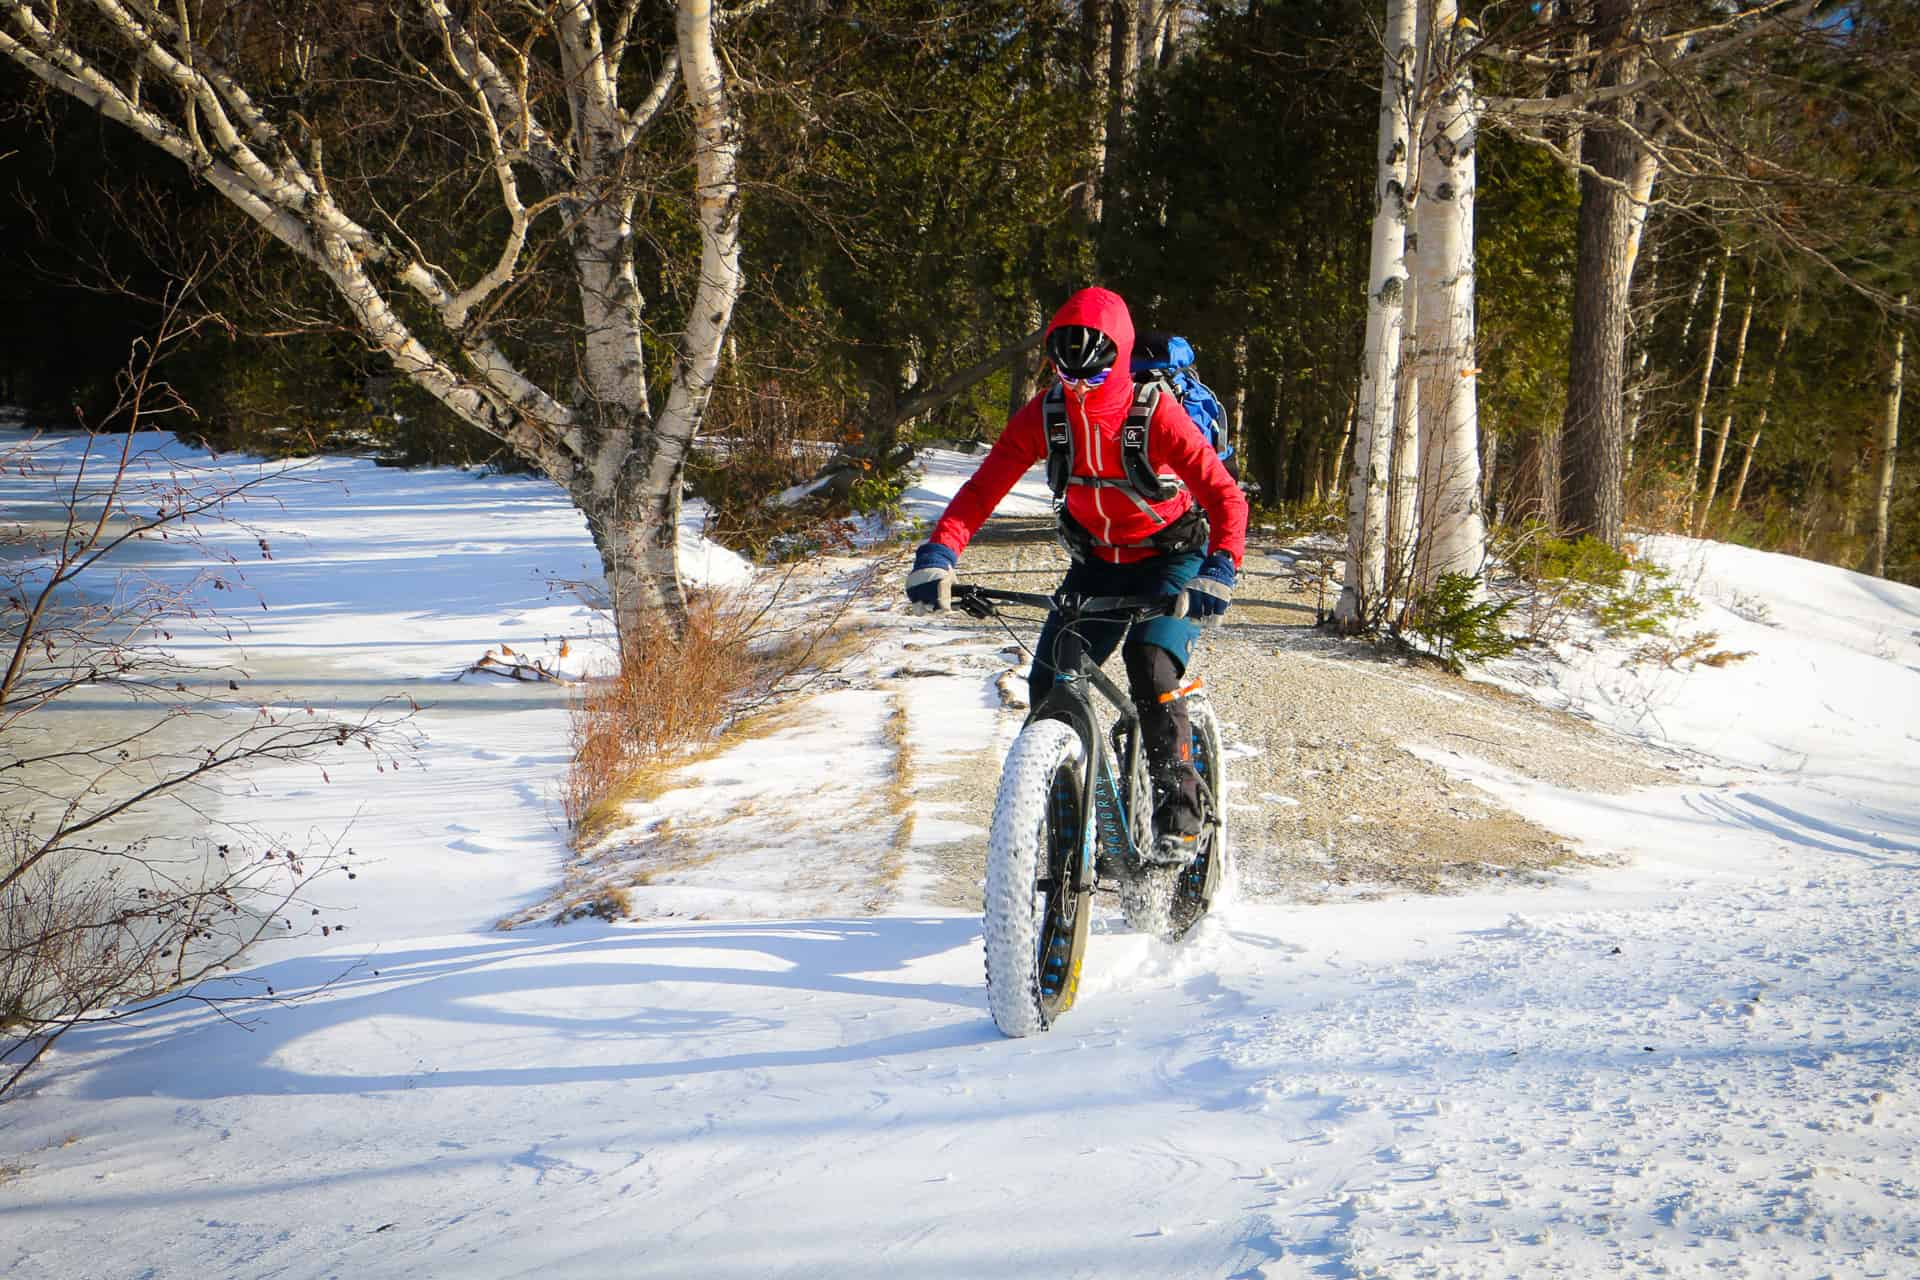 A lady climbing a snowy road on a fat bike